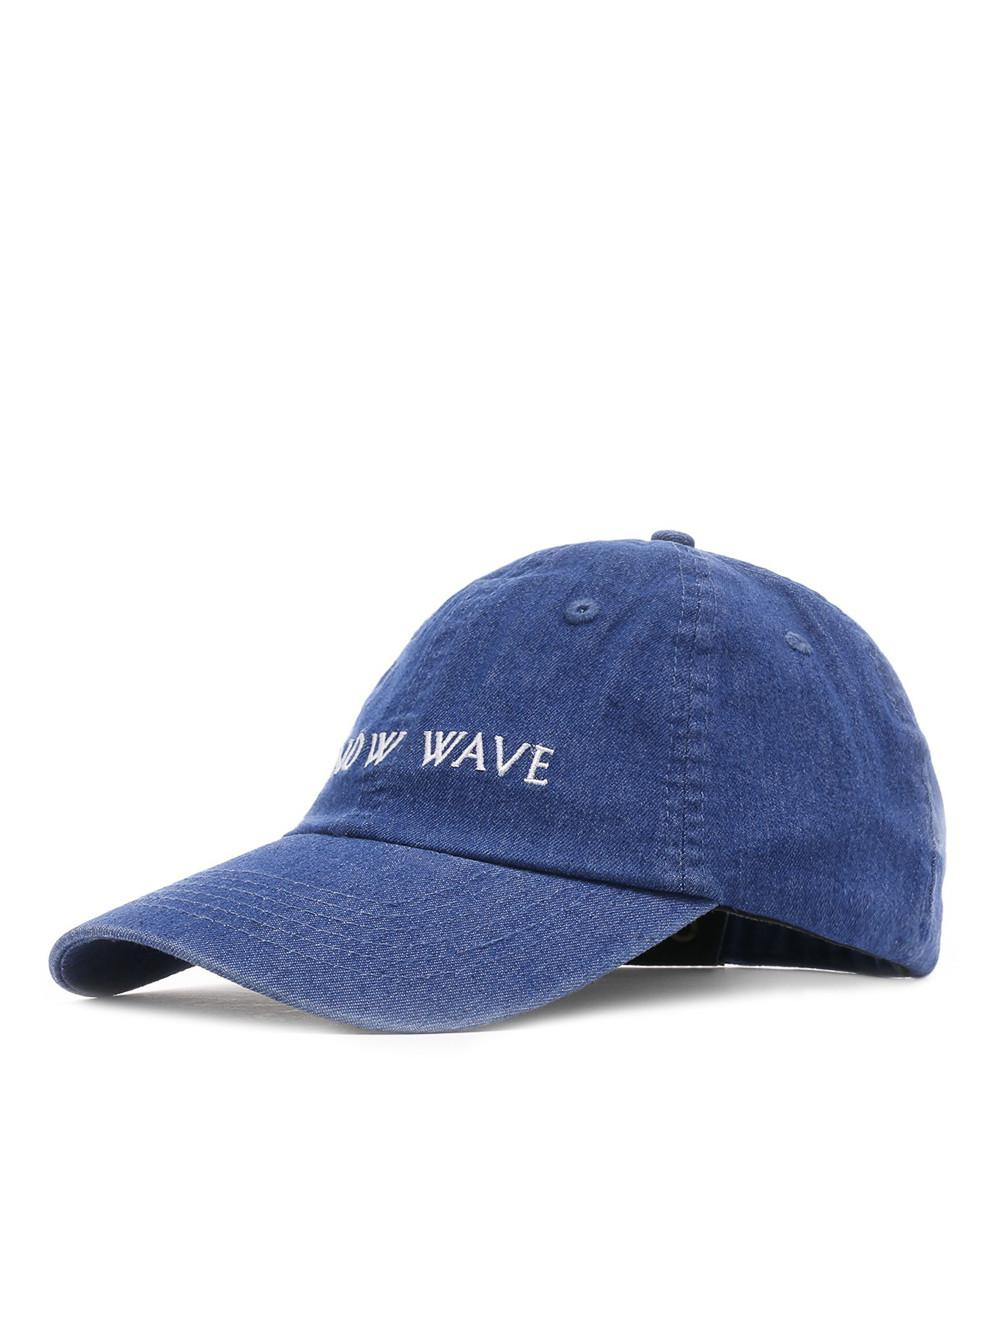 a1ca3c084 Lyst - Know Wave Denim Cap in Blue for Men - Save 15%